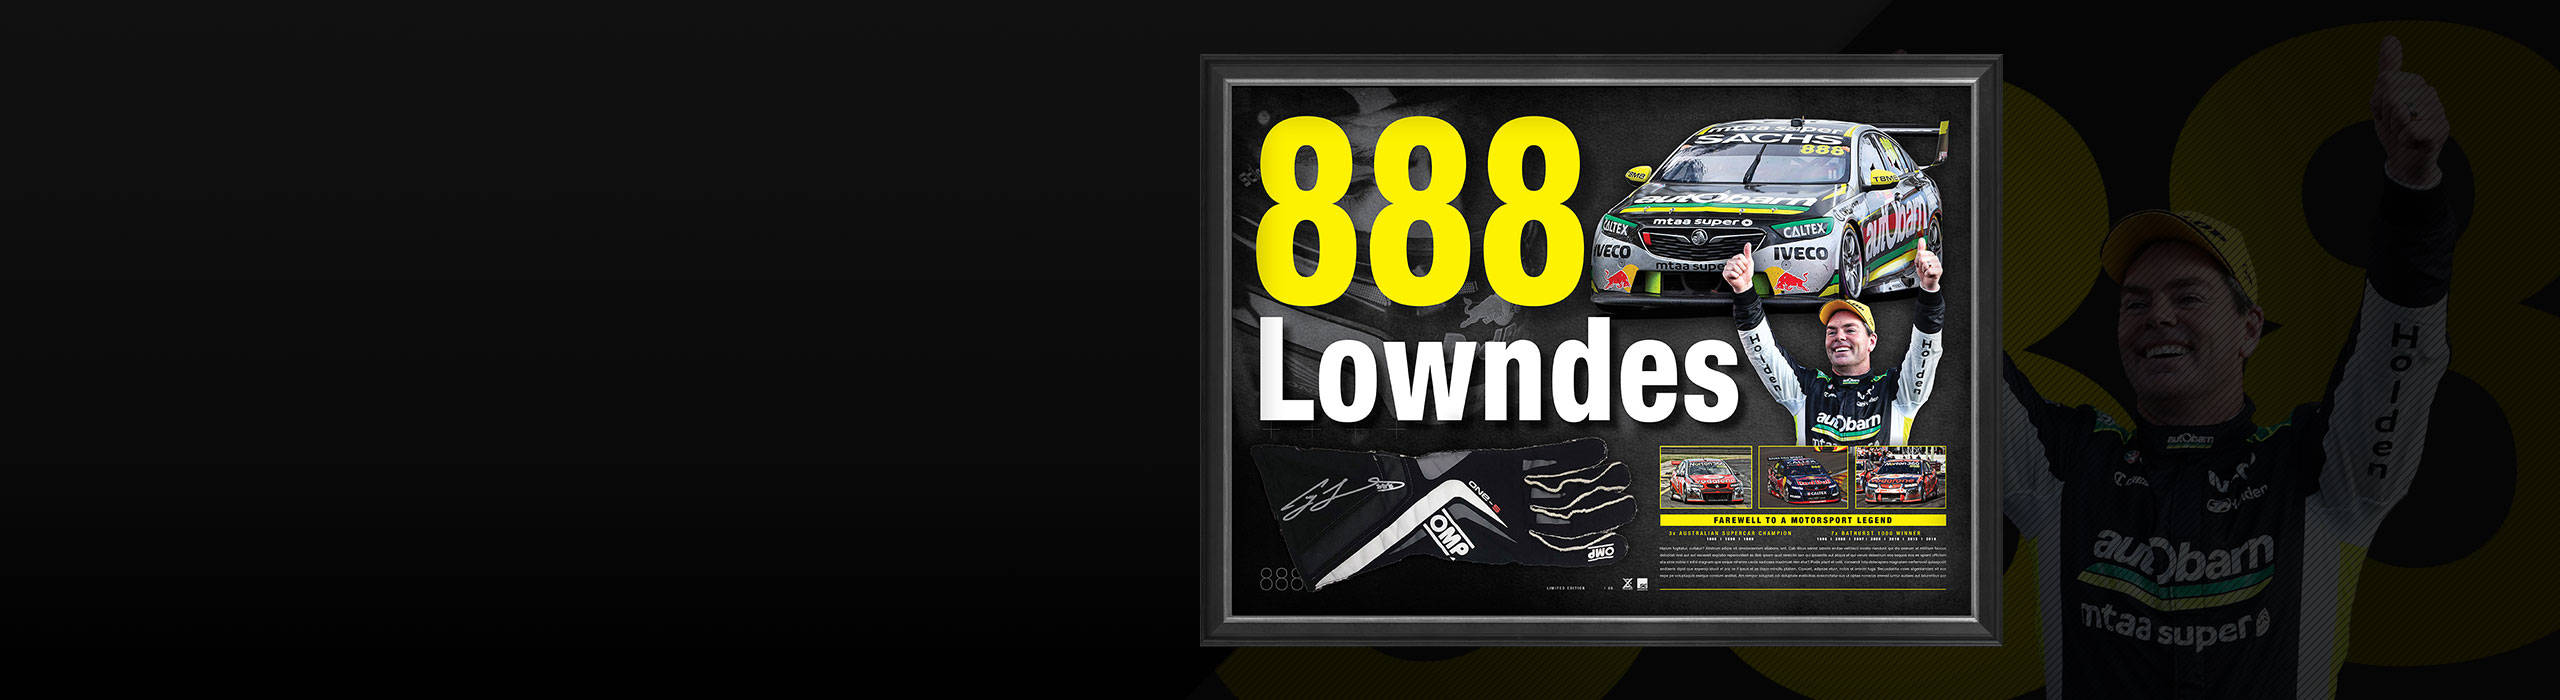 888 LOWNDES